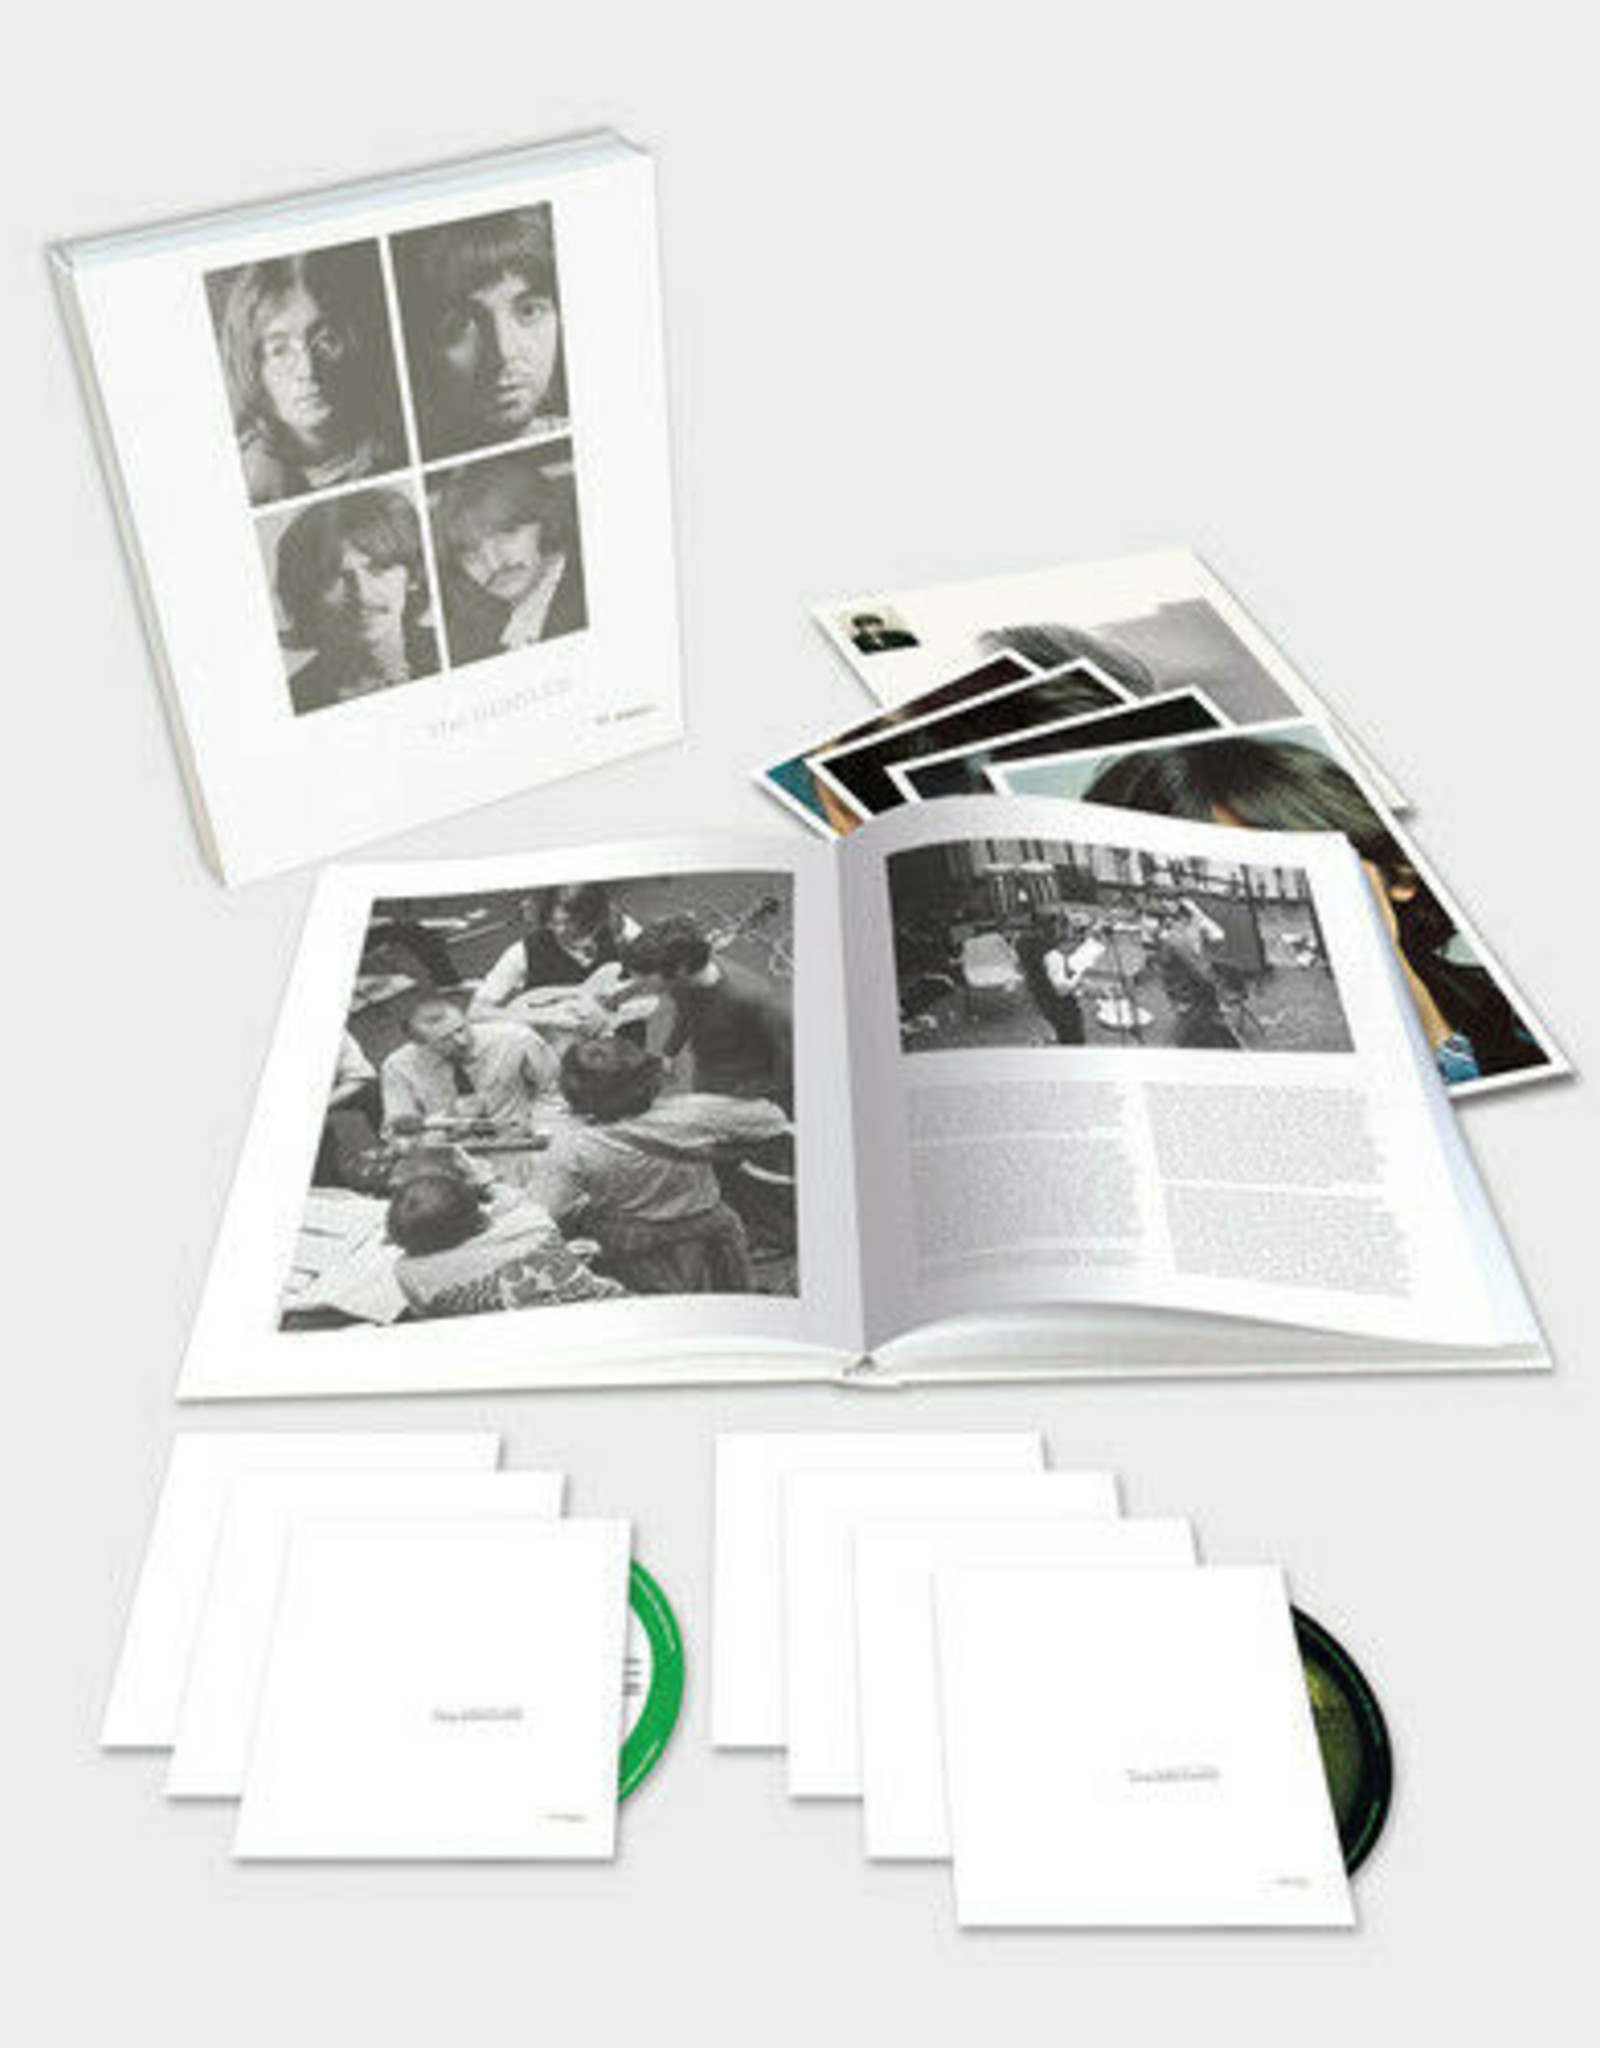 Beatles - The Beatles (White Album) And Esher Demos [Deluxe Box]